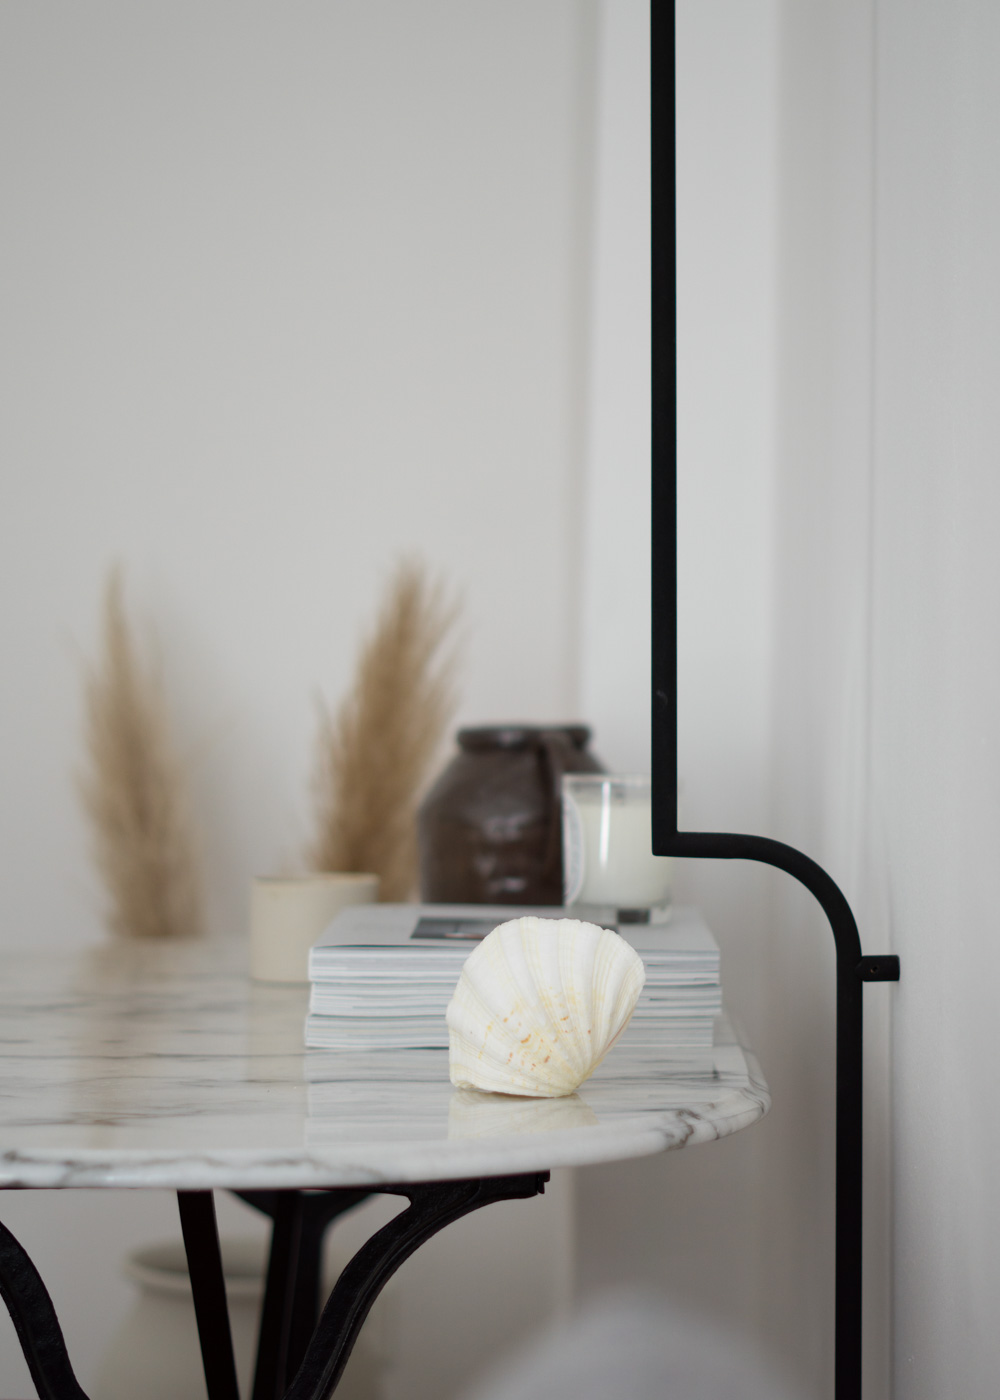 Pholc Lighting Mobil Wall Lamp Black Scandinavian Interior Design Minimal Home Neutral Aesthetic Calm Desk Small Home Office Rg Daily Blog Scandi Style 18 Rg Daily